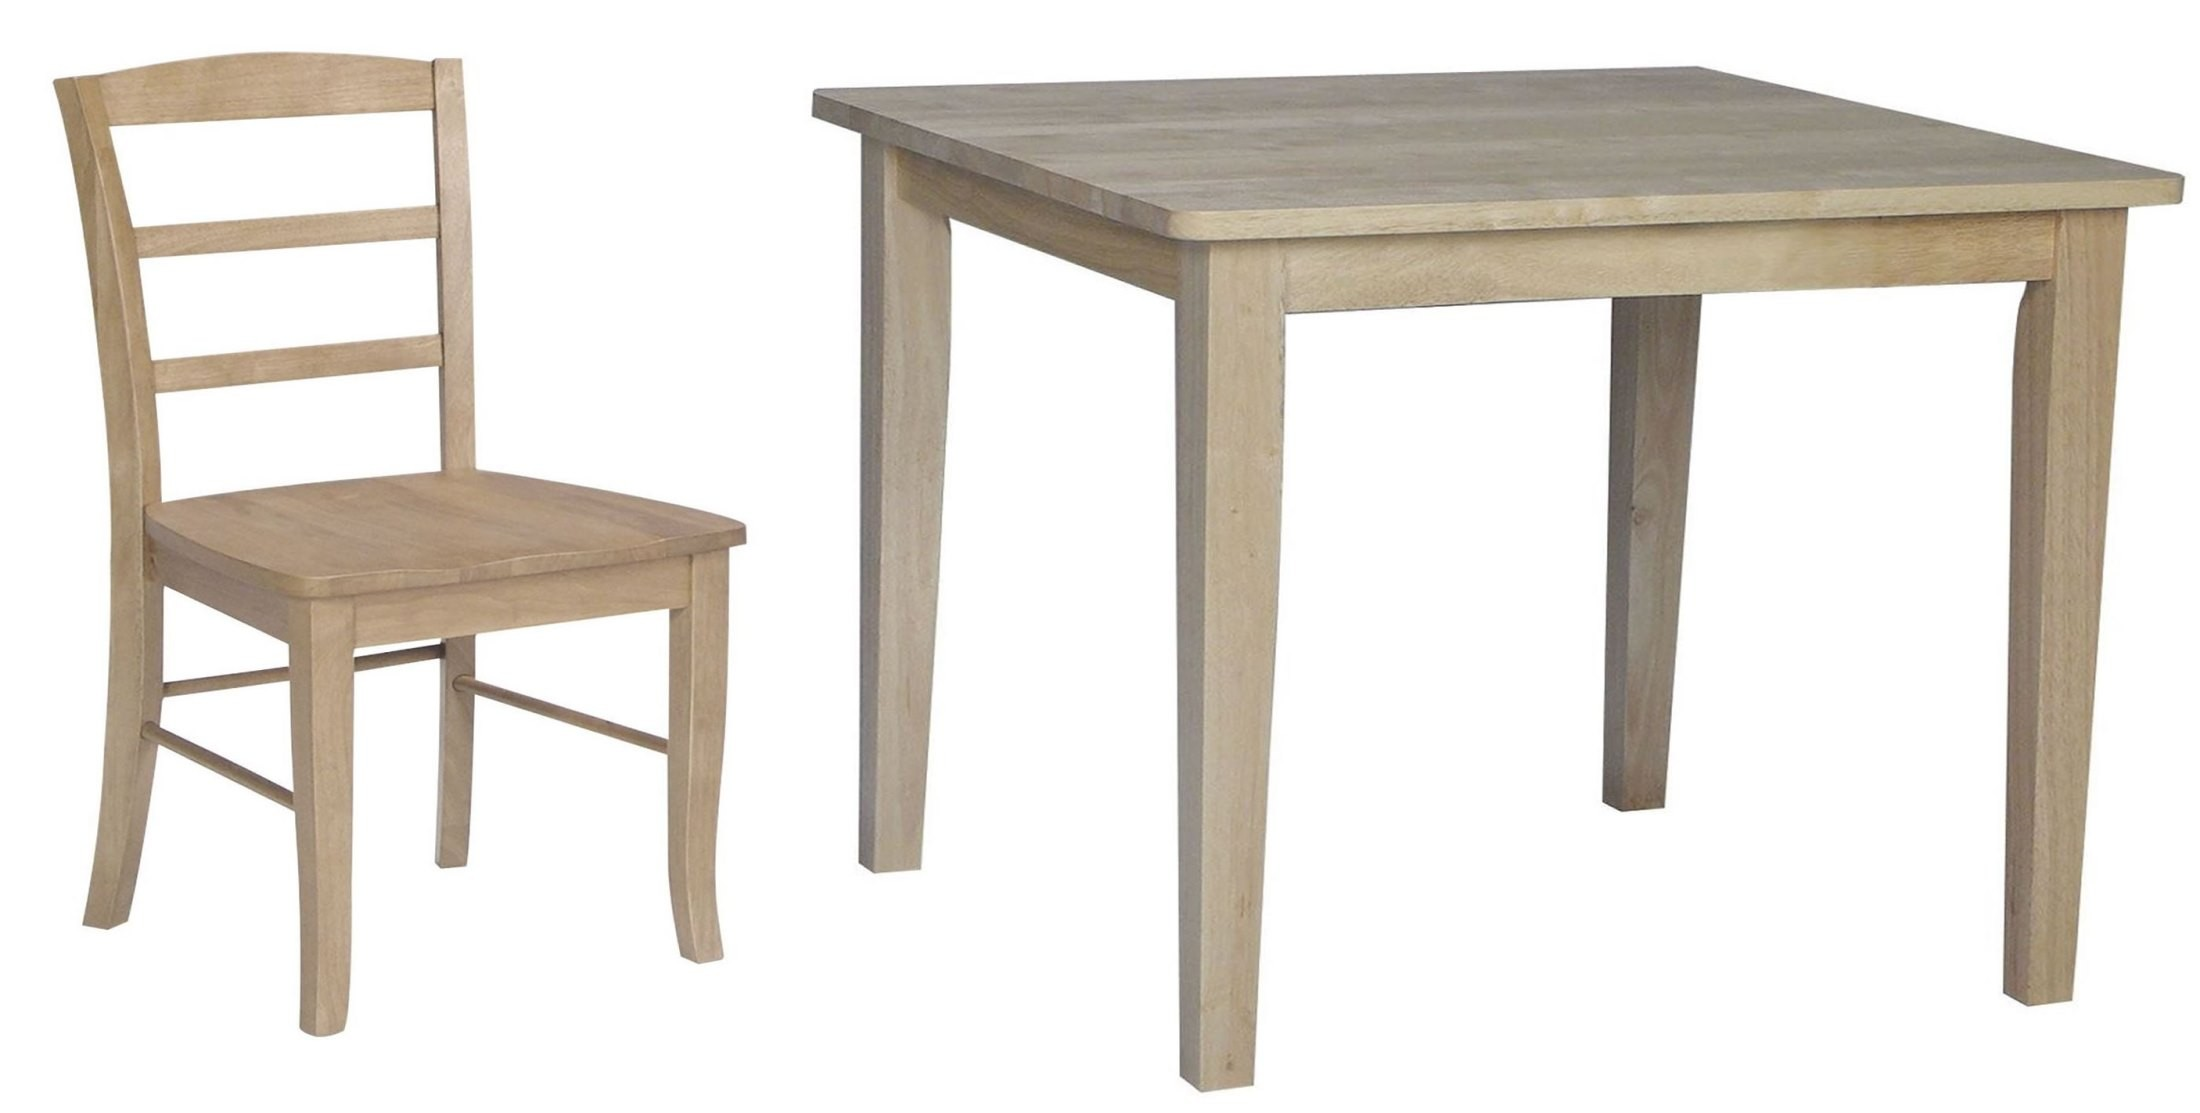 Dining essentials natural square dining room set t01 3030 for Dining room essentials